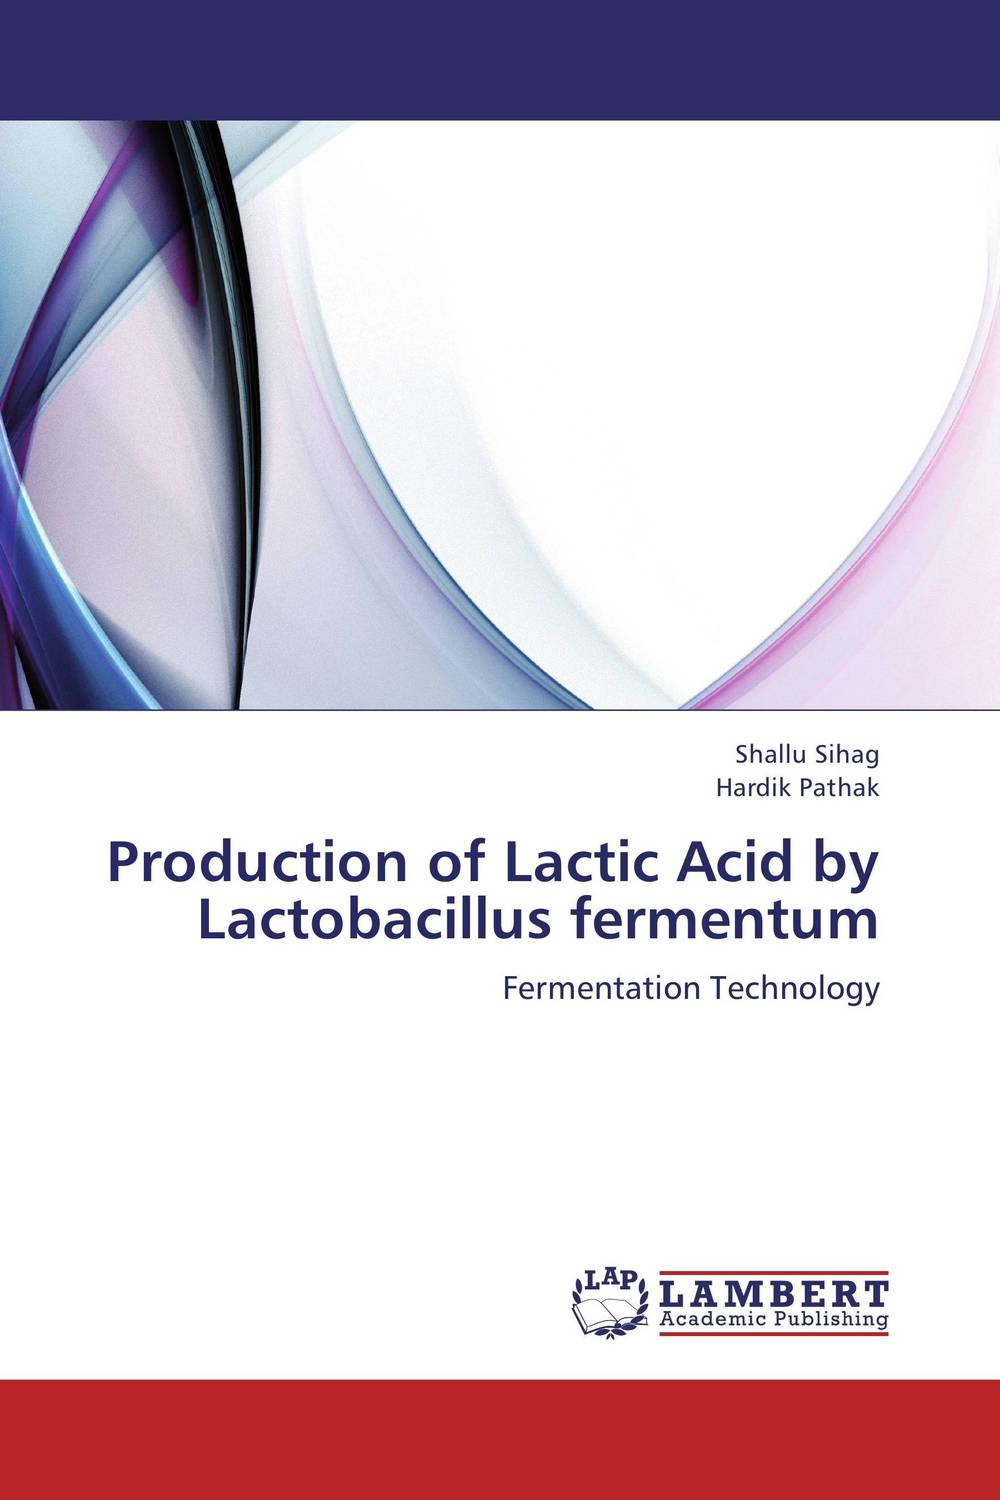 Production of Lactic Acid by Lactobacillus fermentum augmented cellulase production by mutagenesis of trichoderma viride